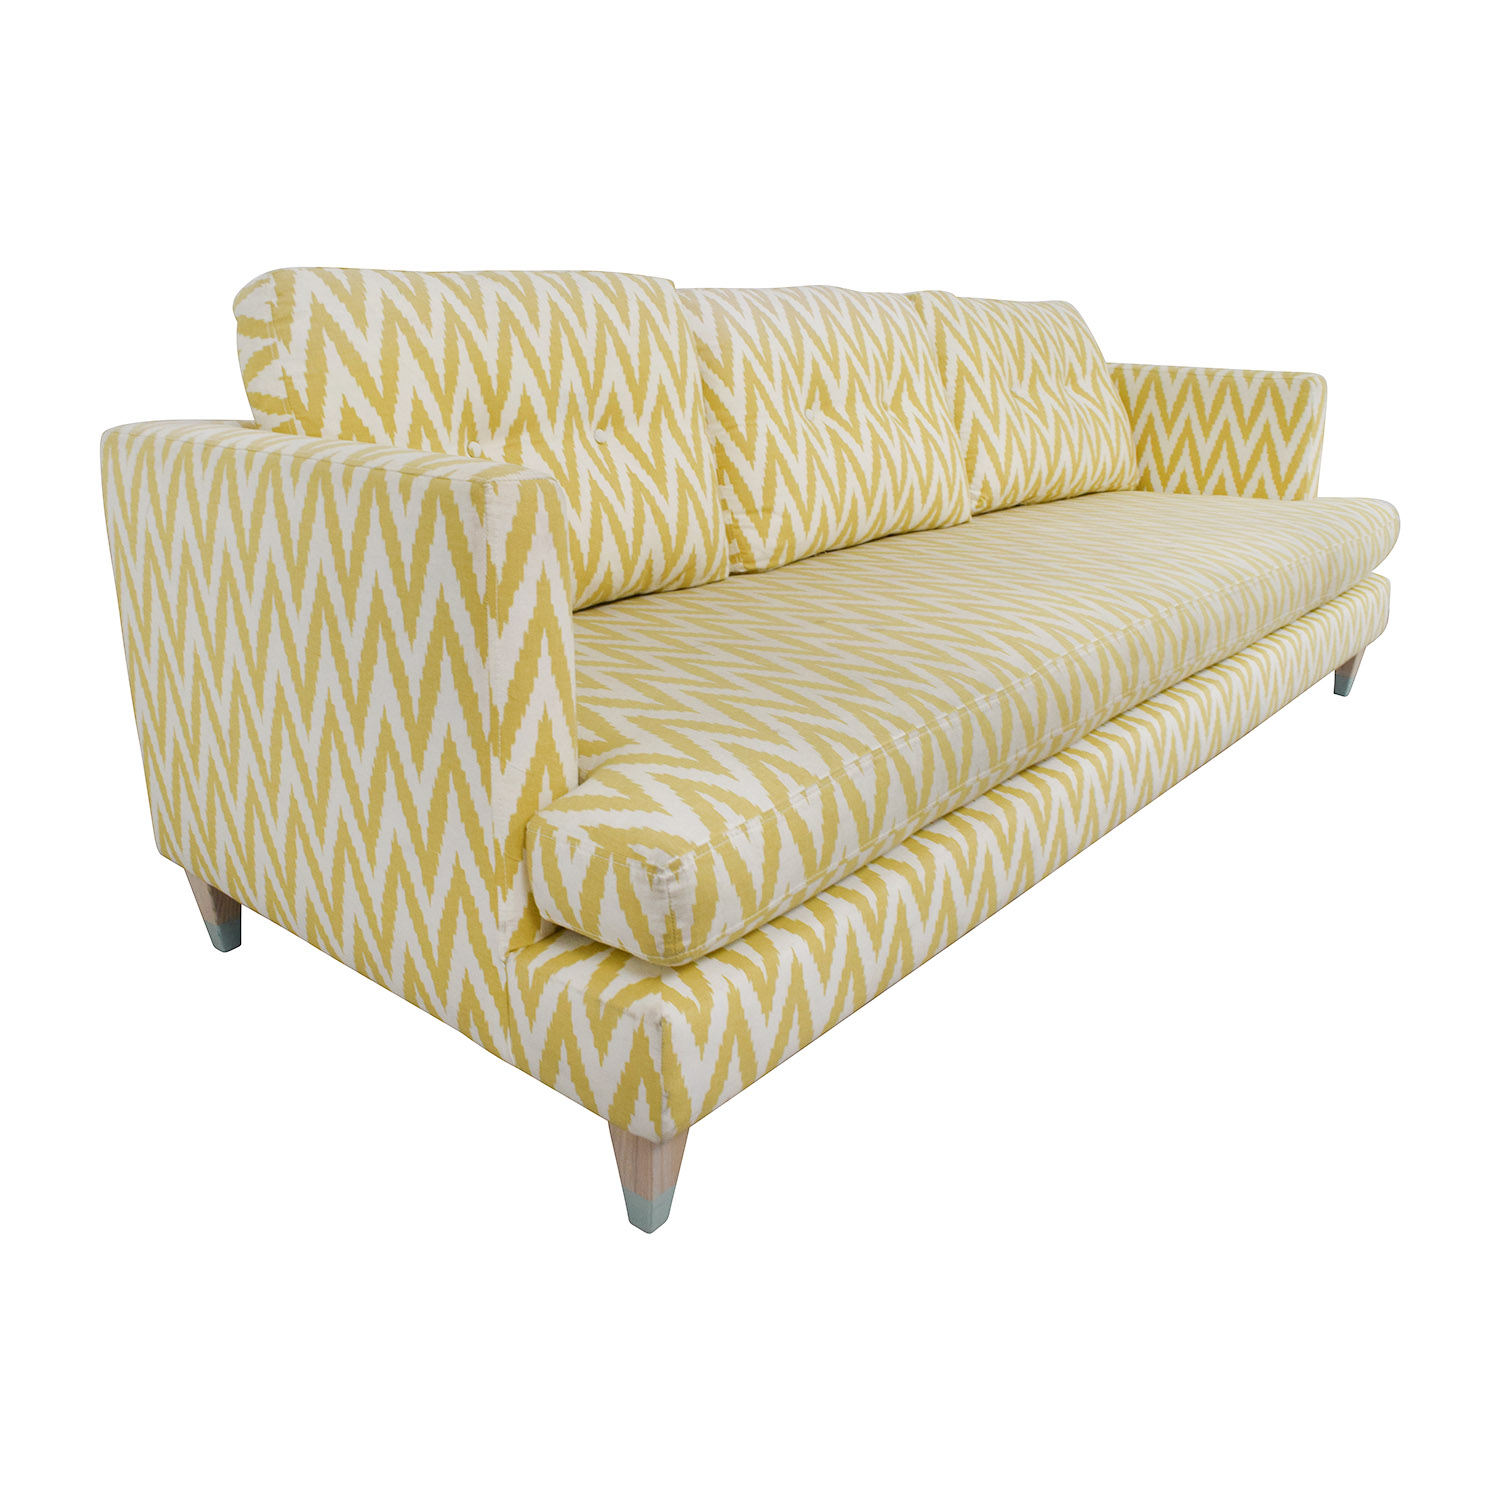 58 off west elm west elm yellow and white single cushion sofa sofas